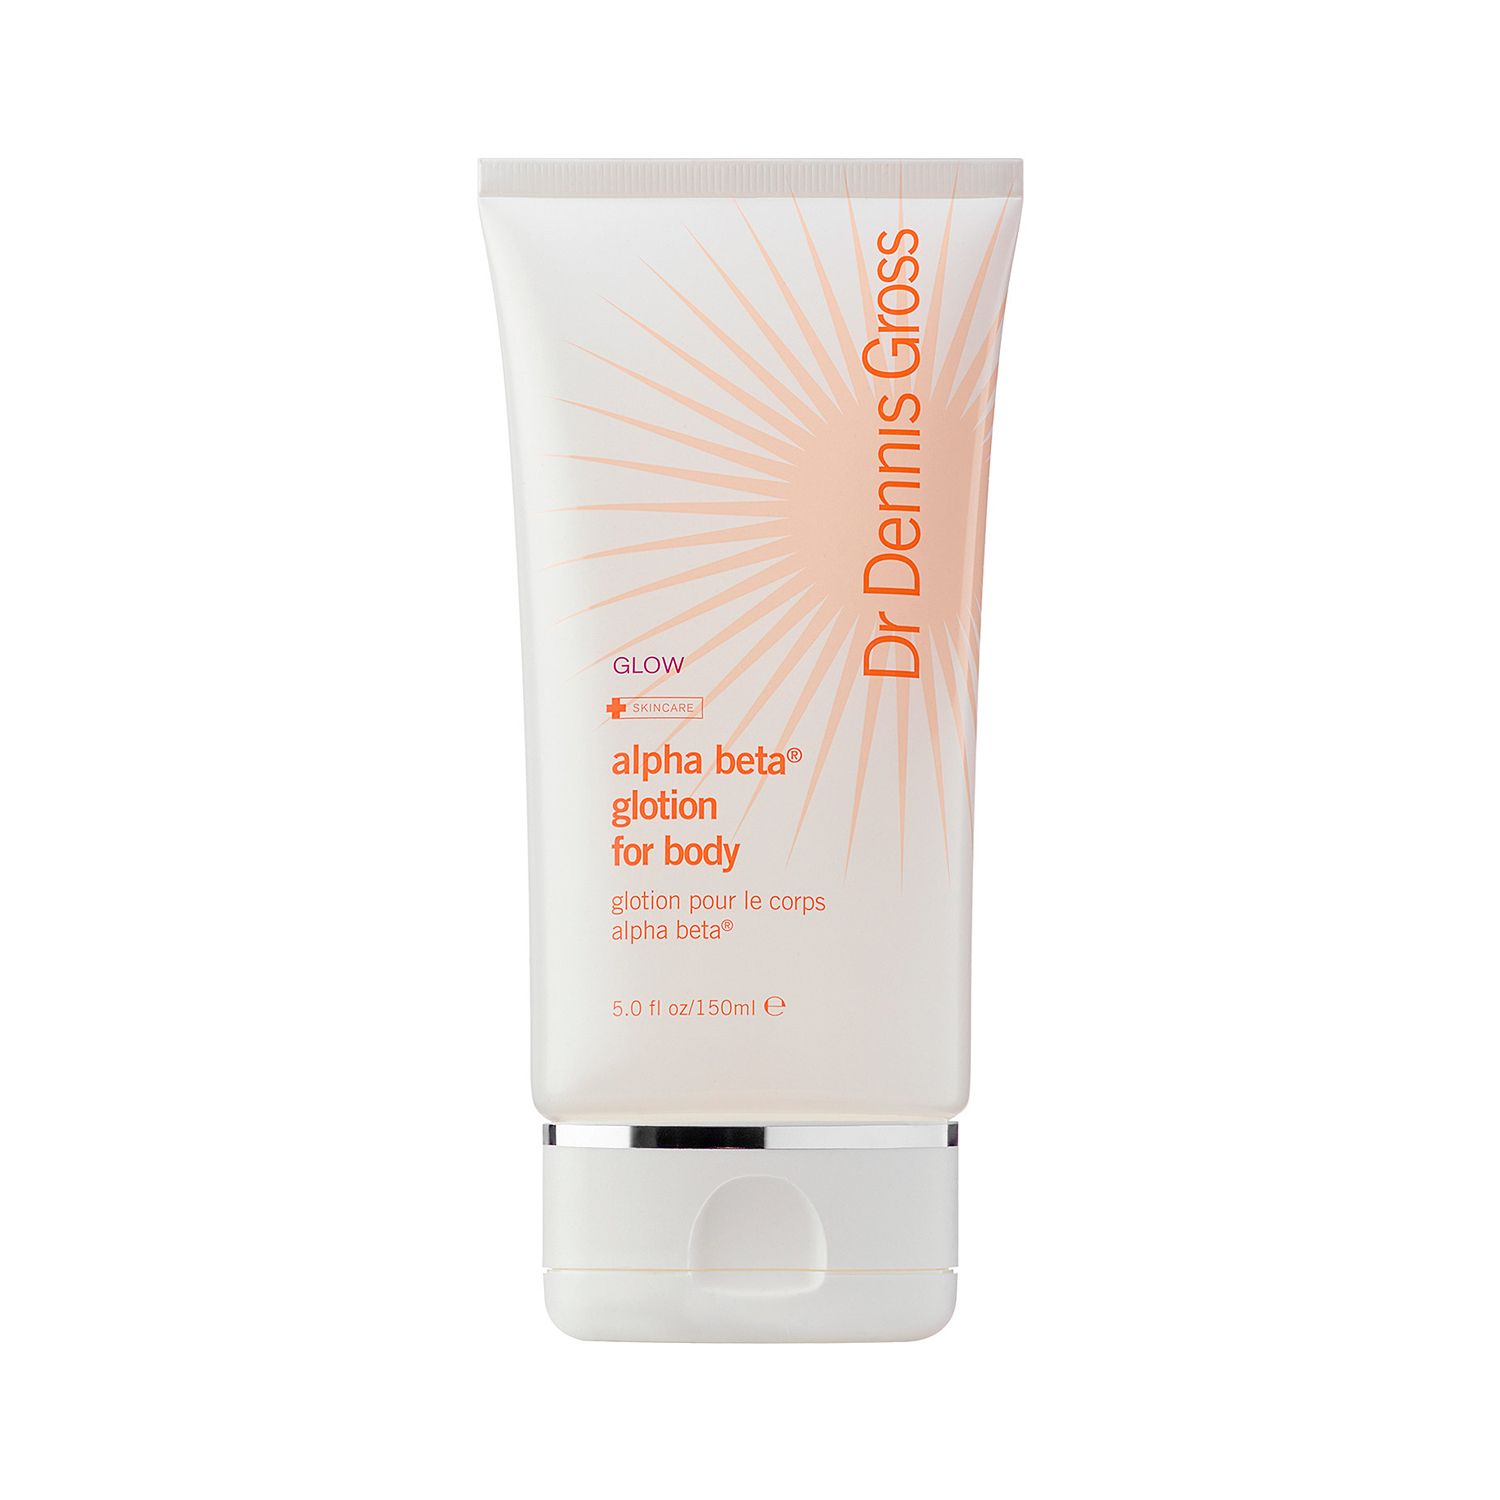 "<p>If you already use self tanner, this is the peel for you. While renewing and firming your skin with antioxidants and chemical exfoliants, it provides restrained, streak-free color that you'll see within one to three hours of application. Plus, it contains CapisloTM, which minimizes hair growth and allows you to go <em>even longer</em> without shaving.</p><p>Dr. Dennis Gross Skincare Alpha Beta Glotion for Body, $38; <a href=""http://www.sephora.com/alpha-beta-glotion-for-body-P386313"" target=""_blank"">sephora.com</a>.</p><p><br></p>"